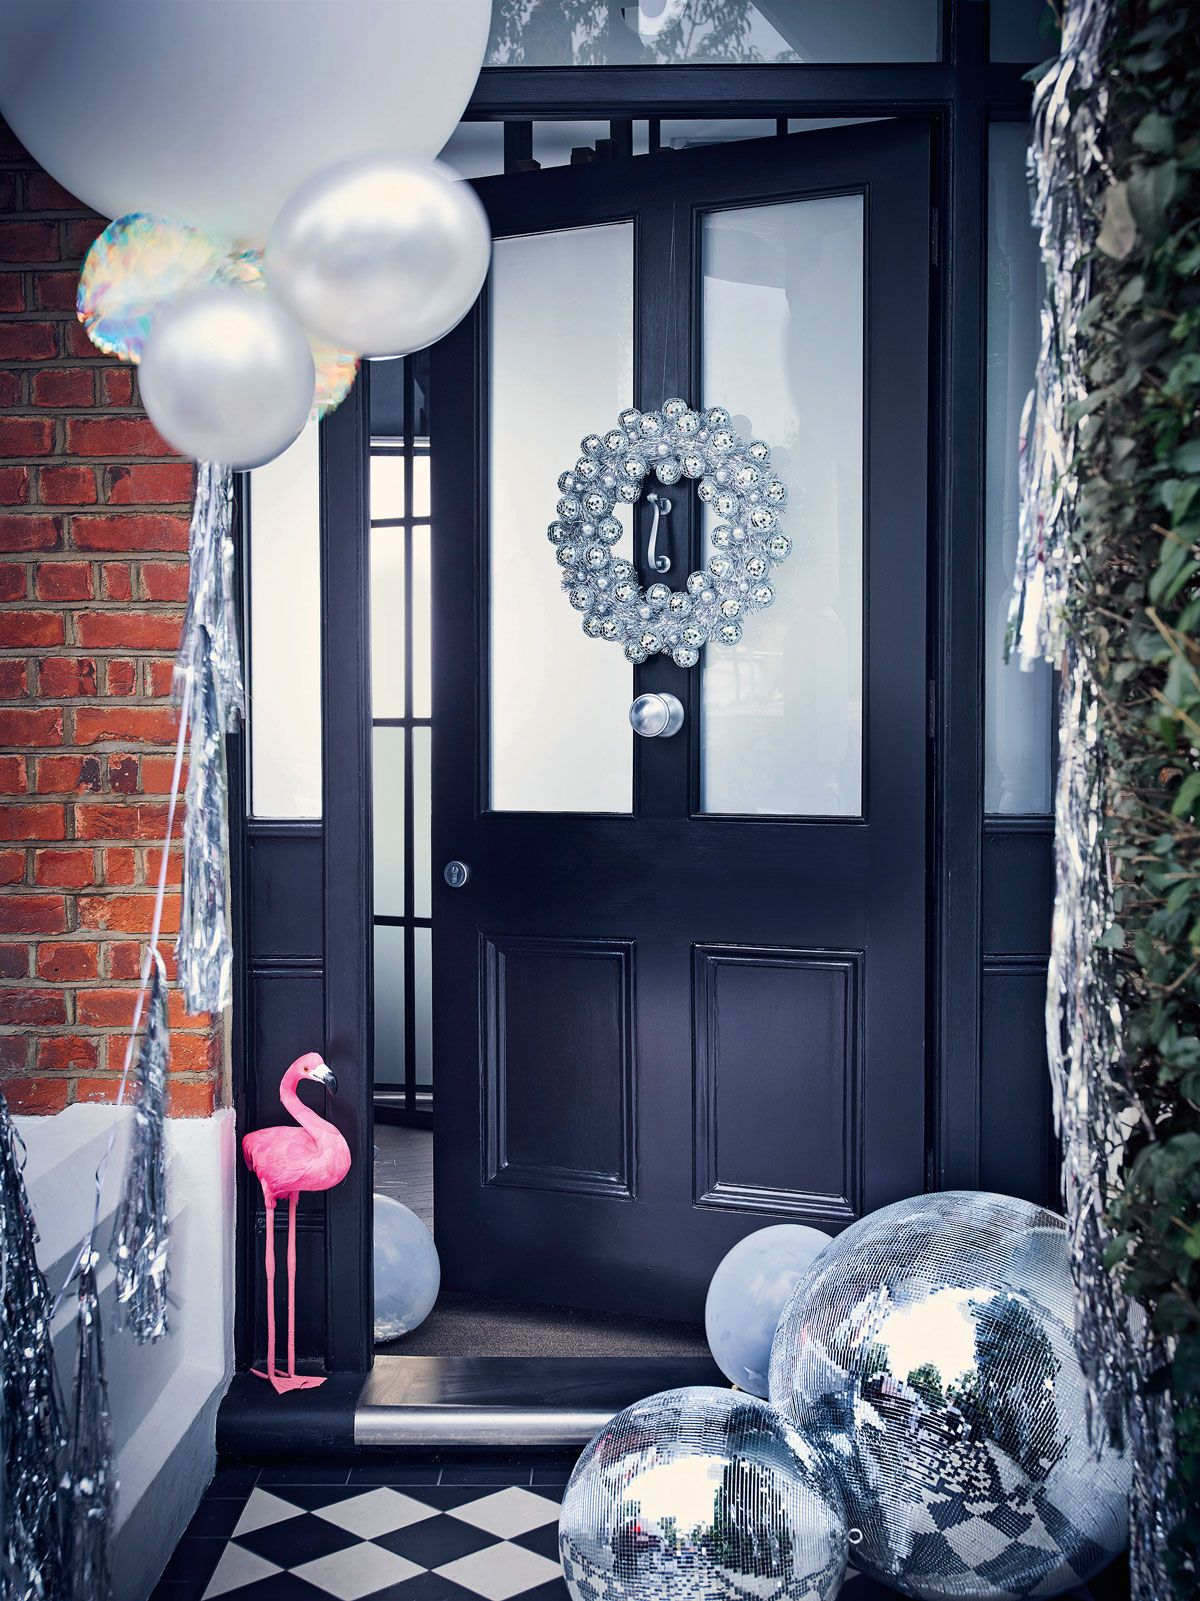 Be inspired by the disco Christmas decorating trend